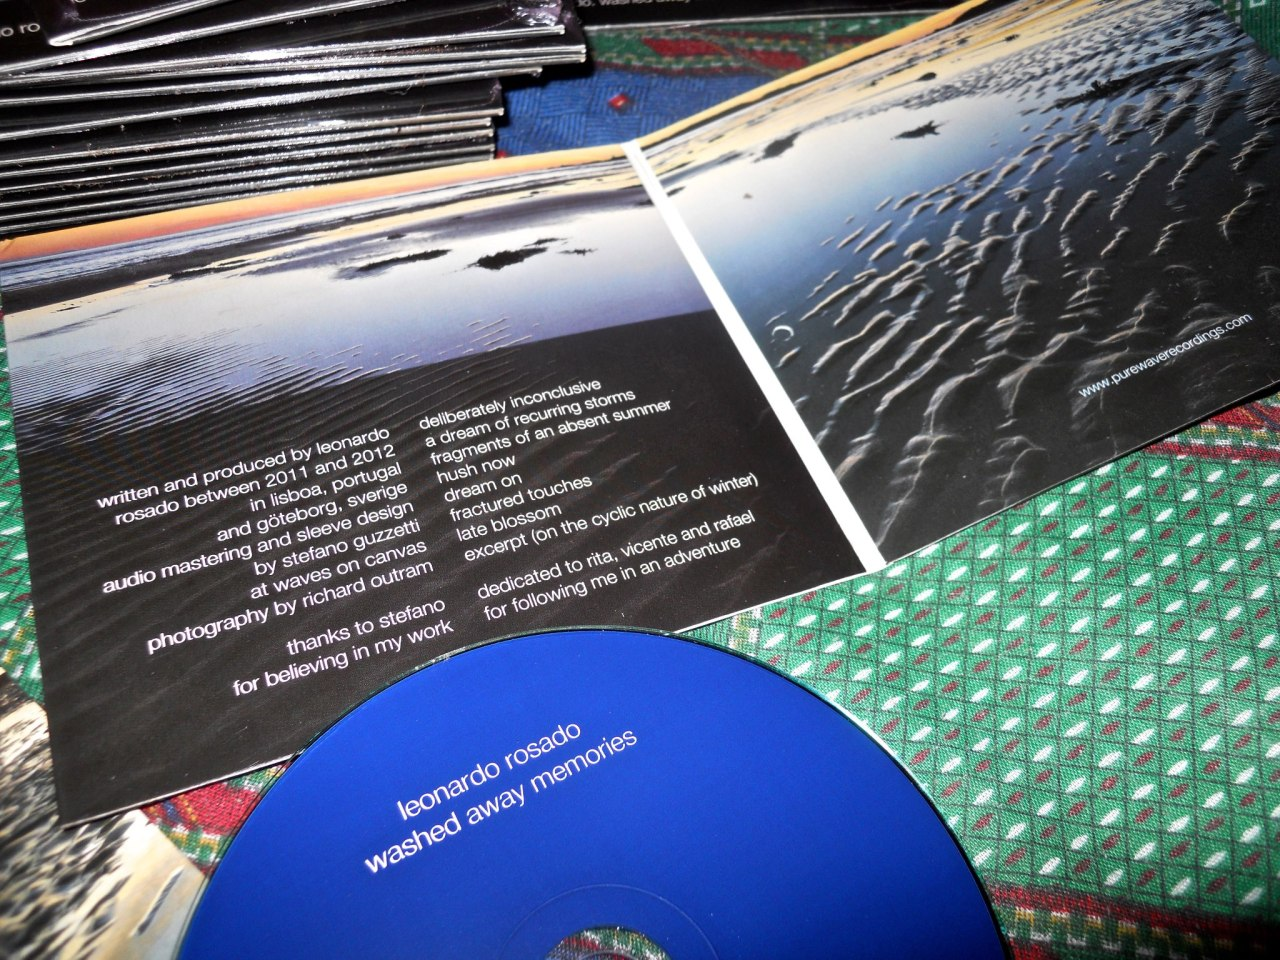 It has arrived to Pure Wave Recordings headquarters. My forthcoming album Washed away memories. To be released the 3rd of May.